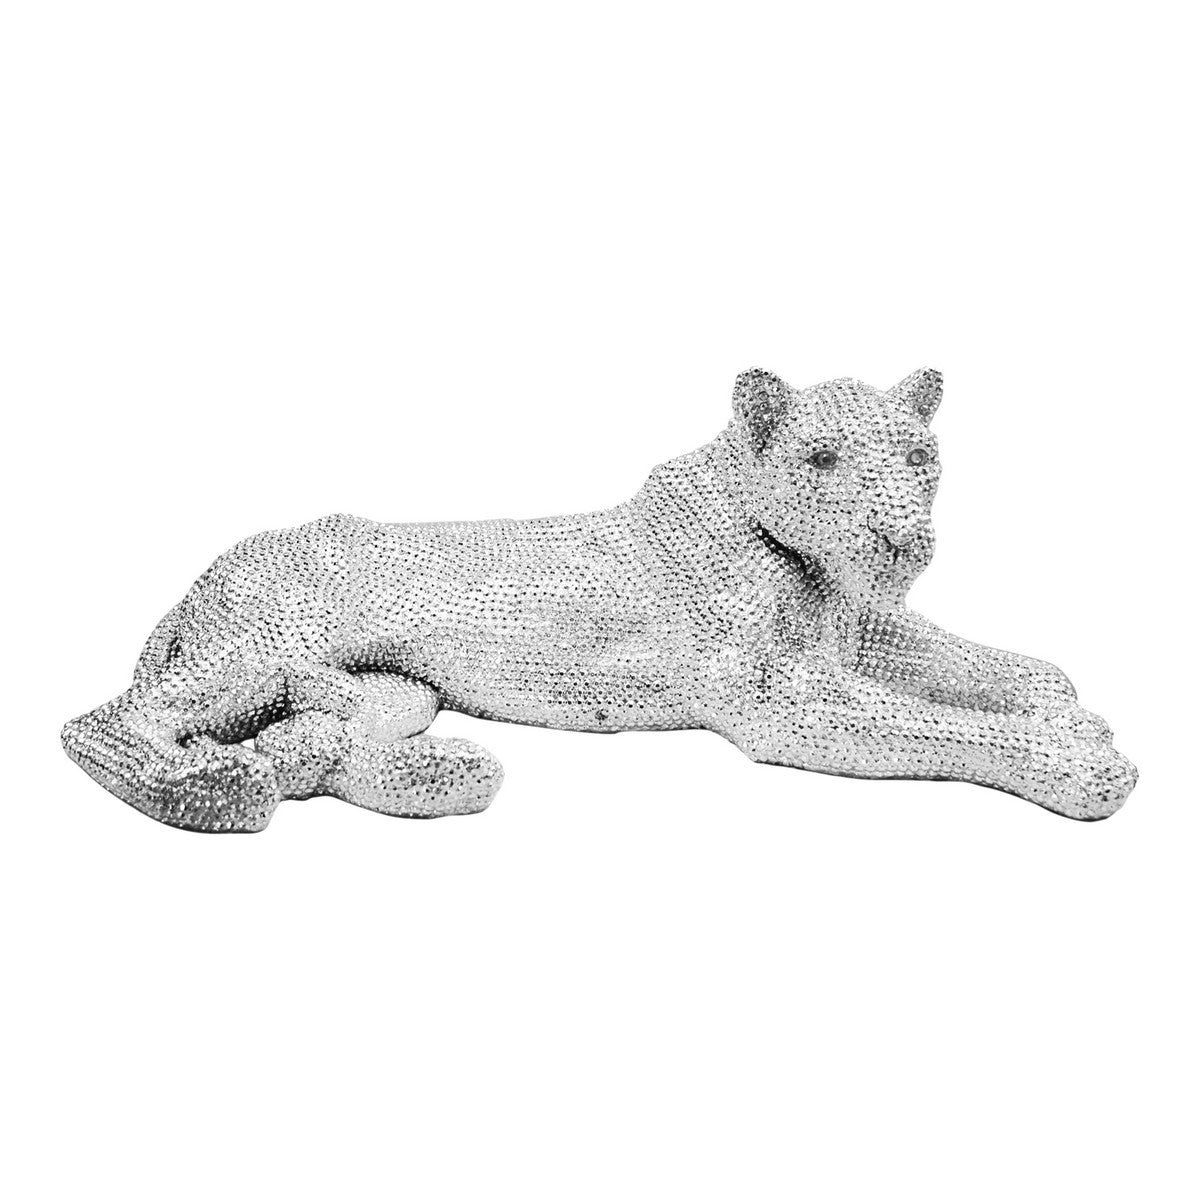 Moe's Home Collection Panthera Statue Silver - LA-1055-30 - Moe's Home Collection - Art - Minimal And Modern - 1